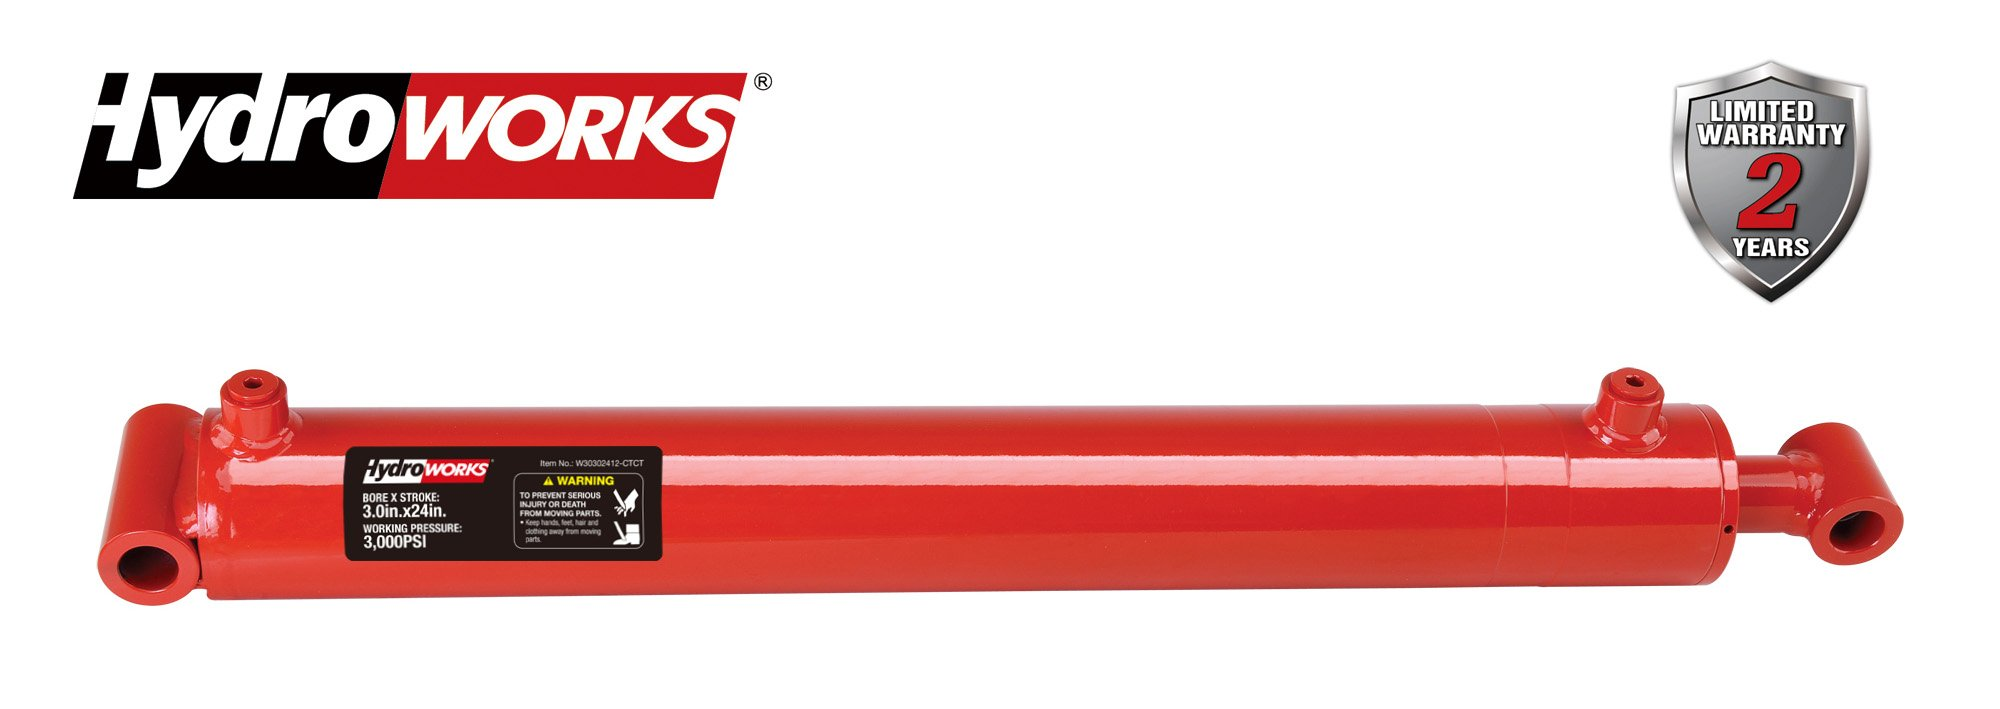 HYDROWORKS Double Acting Tie Rod Hydraulic Cylinder, 2500 PSI (3'' Bore/ 24'' Stroke - Cross End)